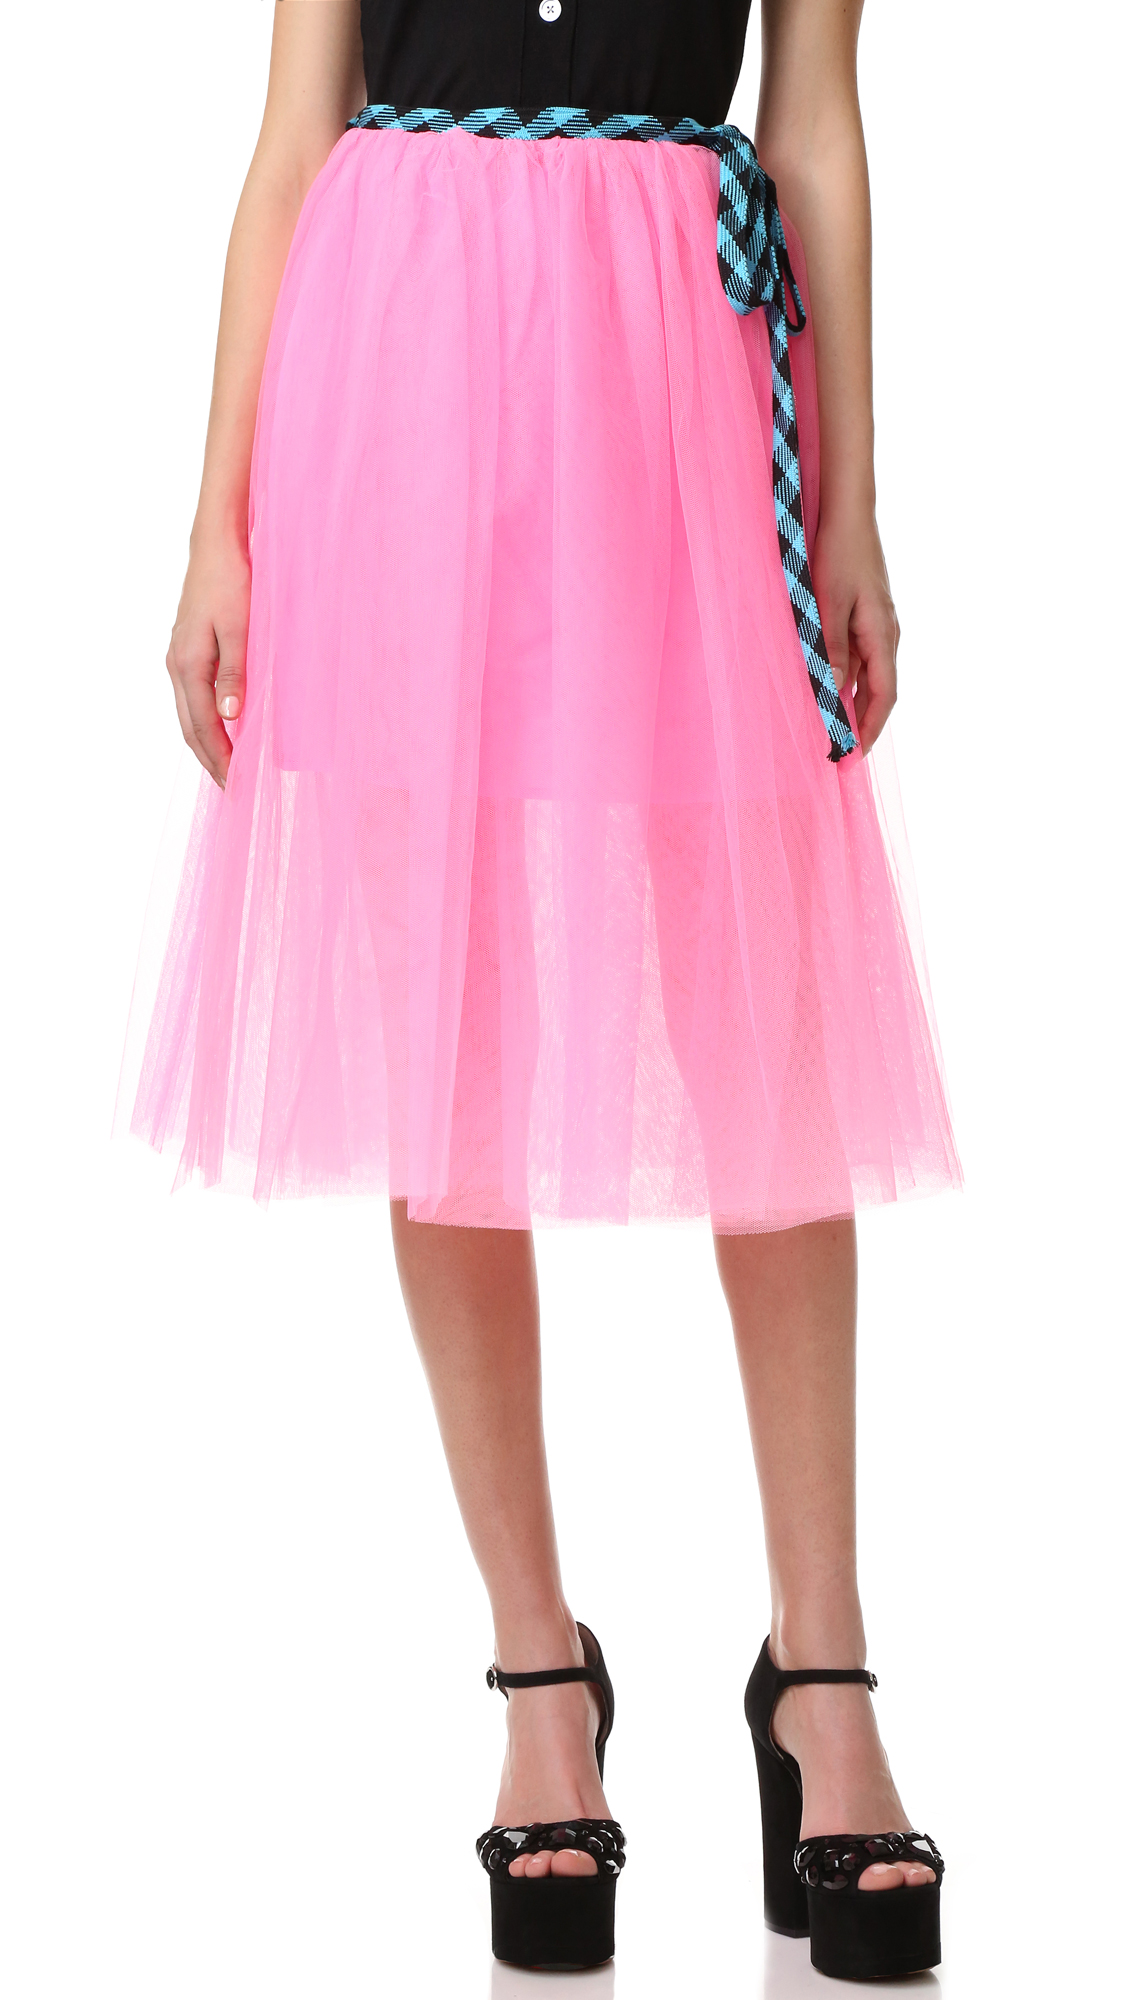 marc jacobs female marc jacobs tulle skirt pink